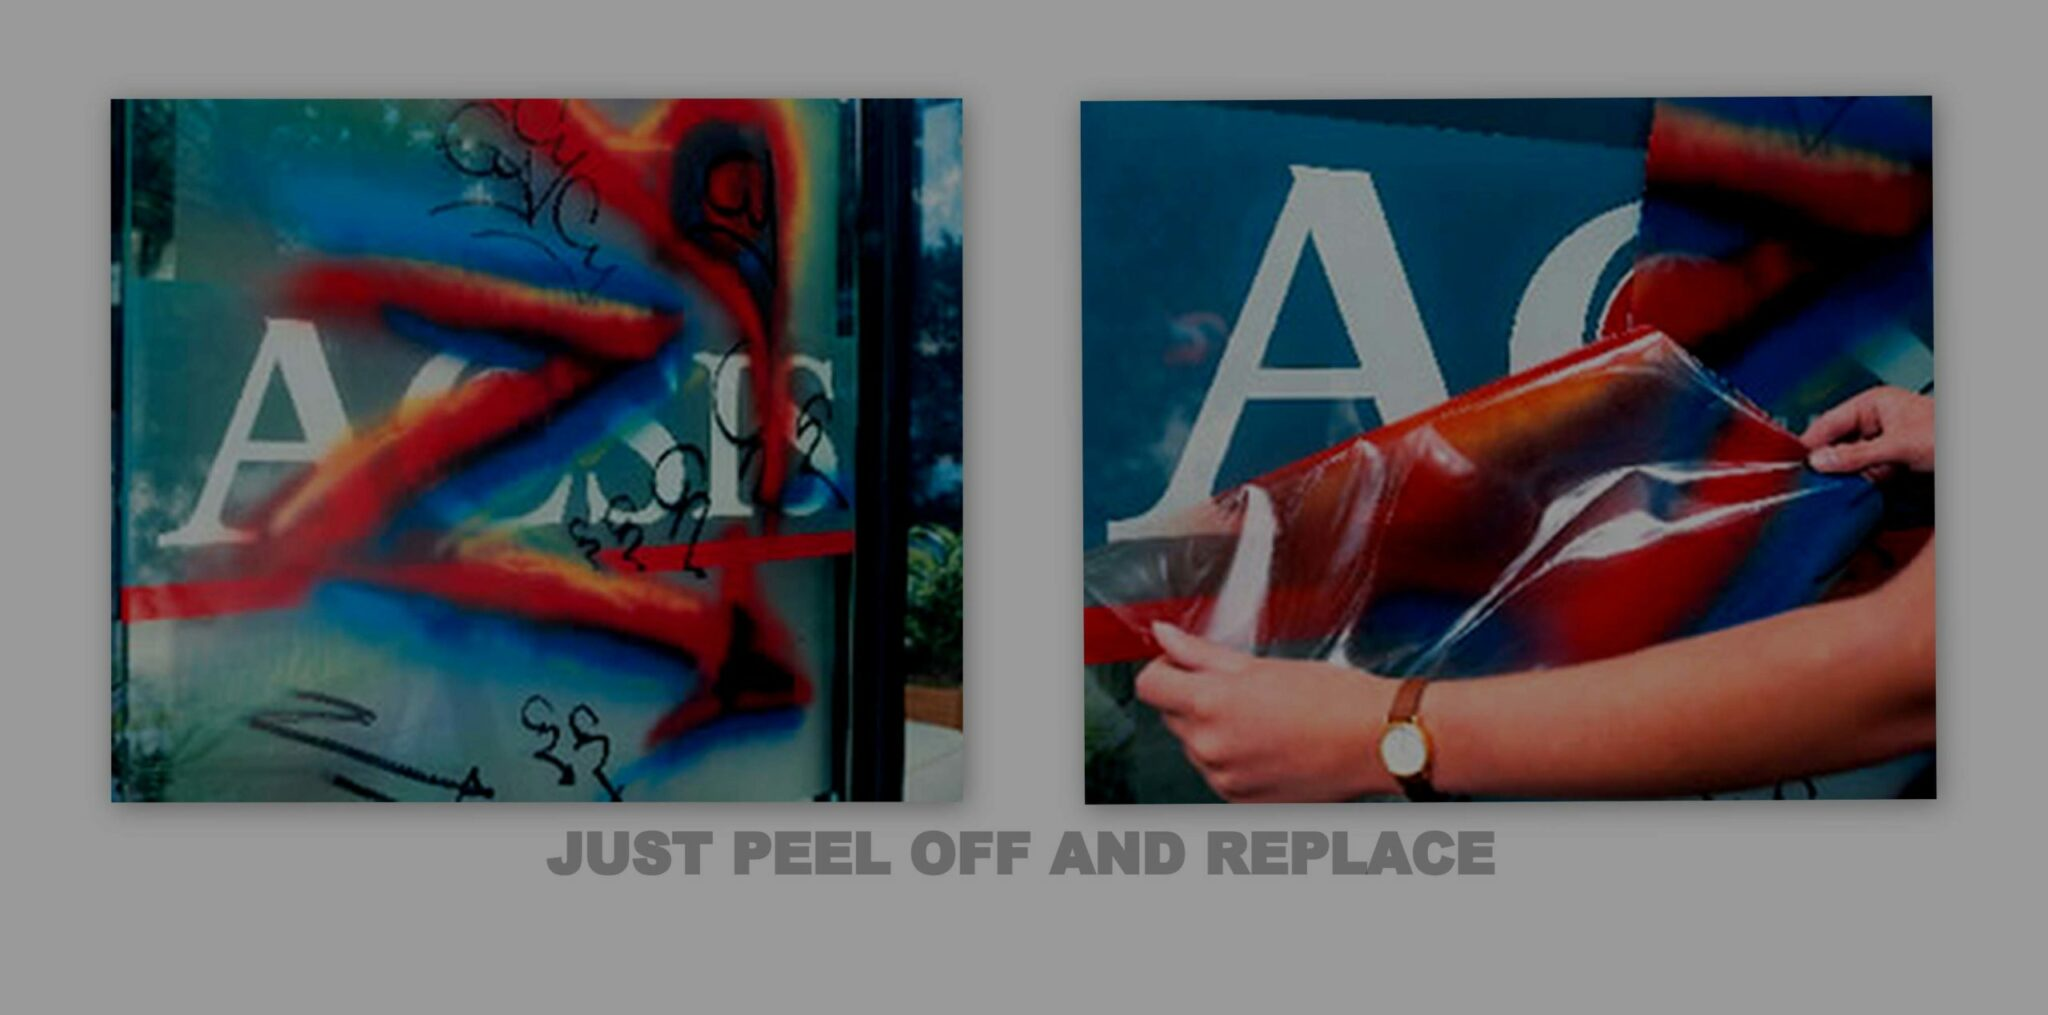 Just peel off and replace - pictures of our anti graffiti film